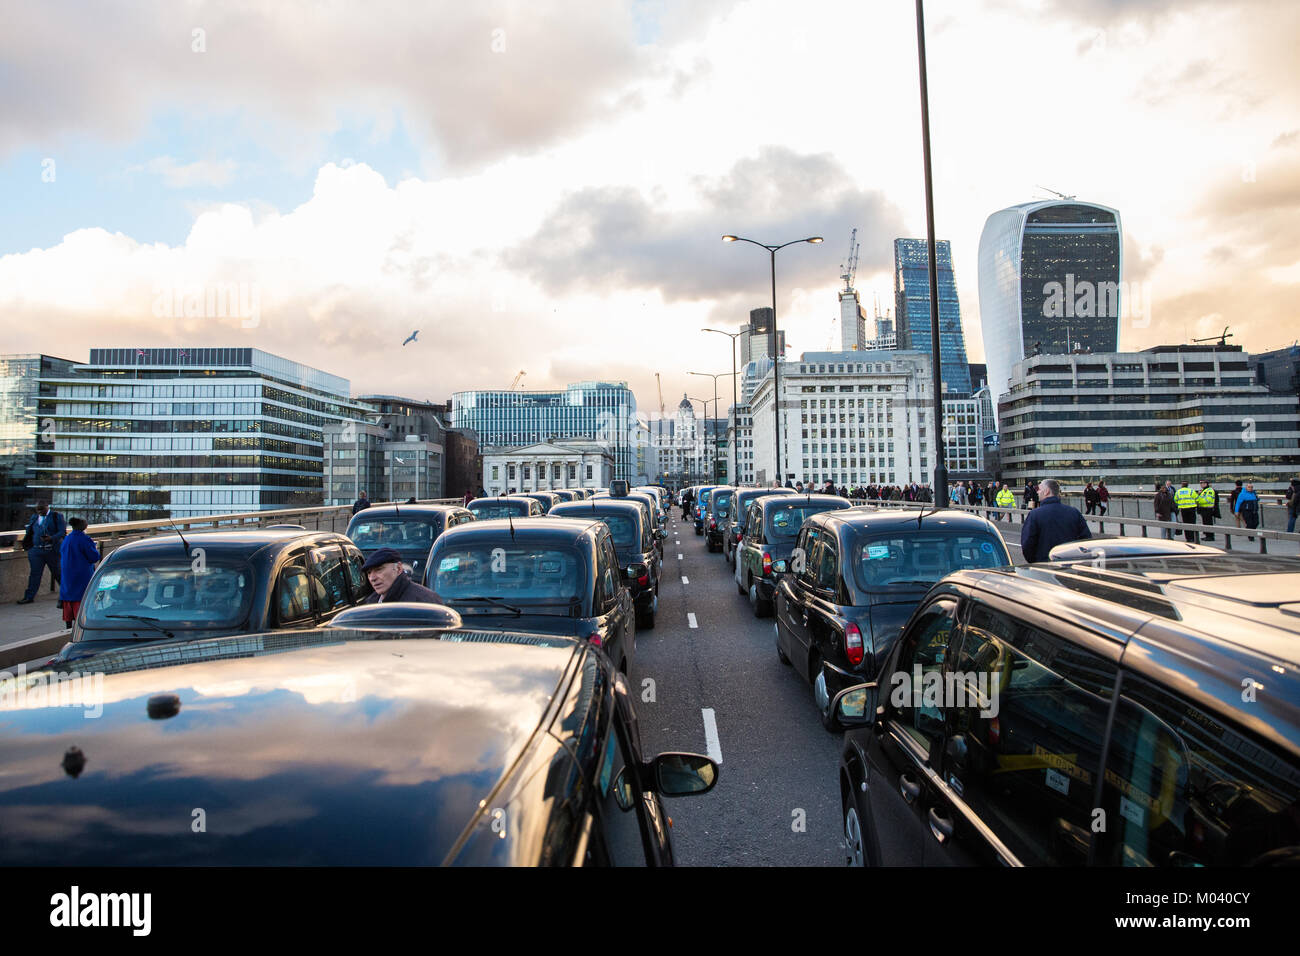 London, UK. 18th January, 2018. Black cab drivers block London Bridge in the latest of a series of protests in response - Stock Image